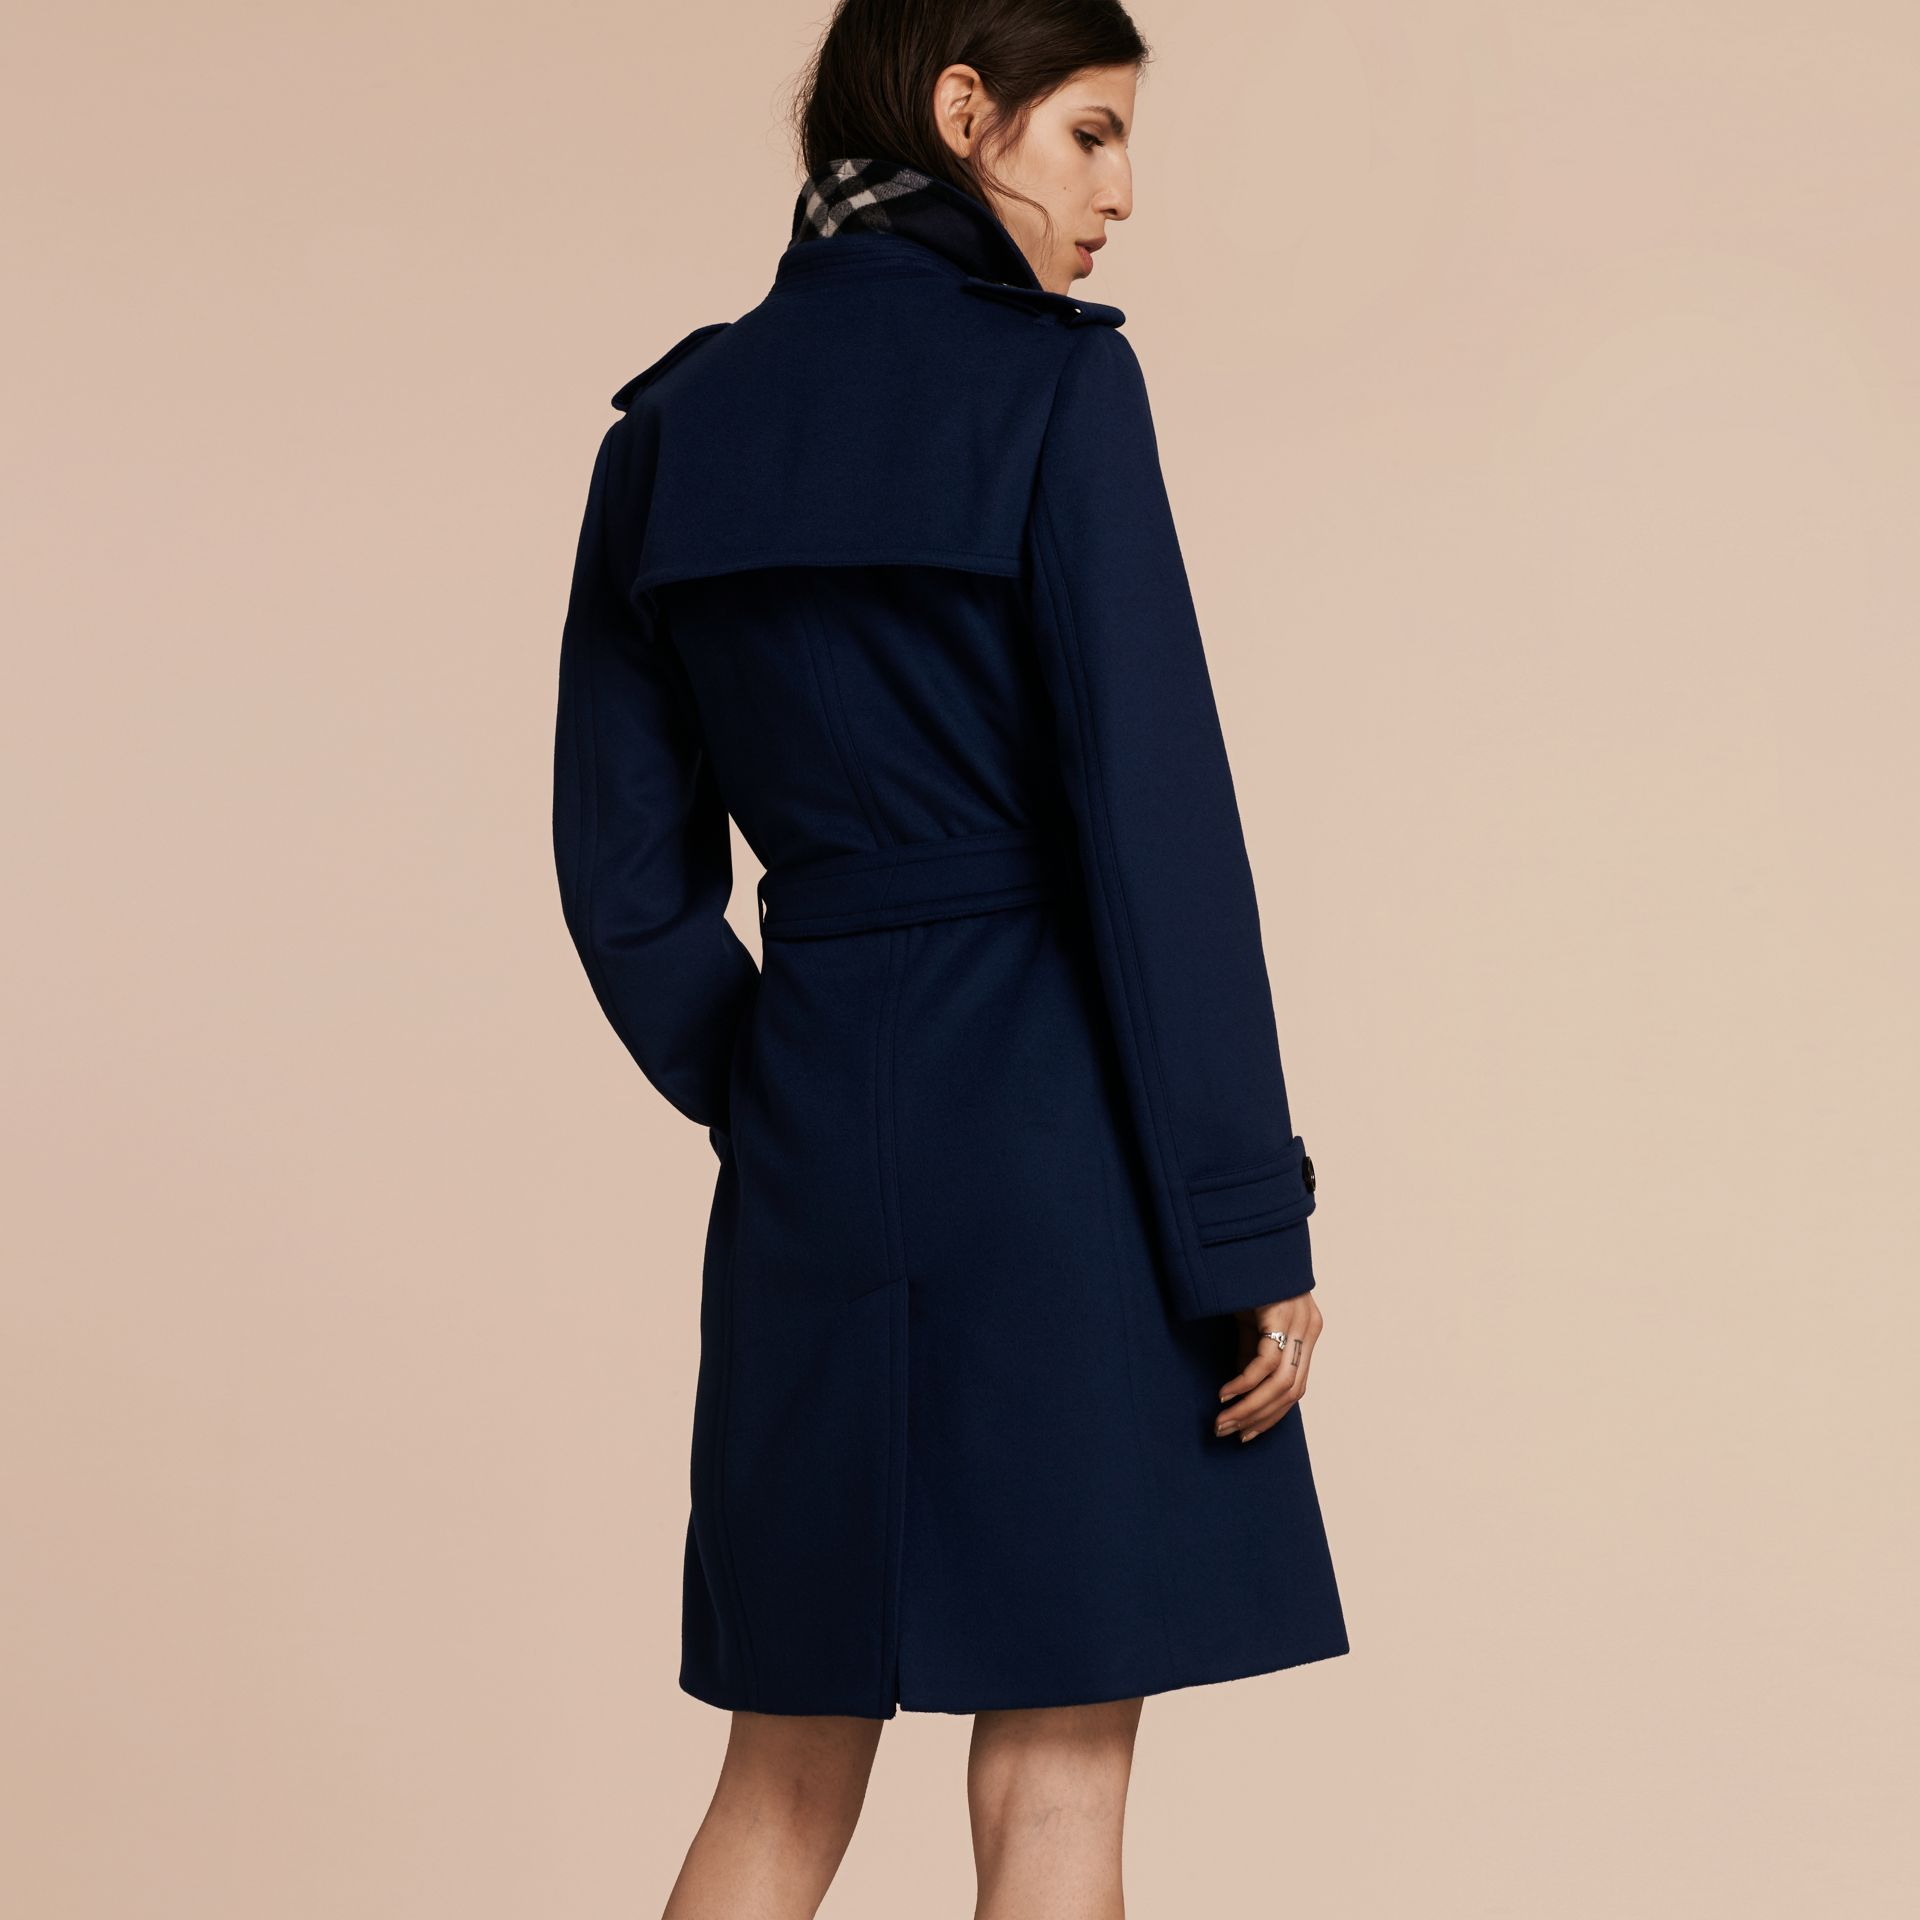 Bleu empire Trench-coat portefeuille en laine et cachemire - photo de la galerie 3